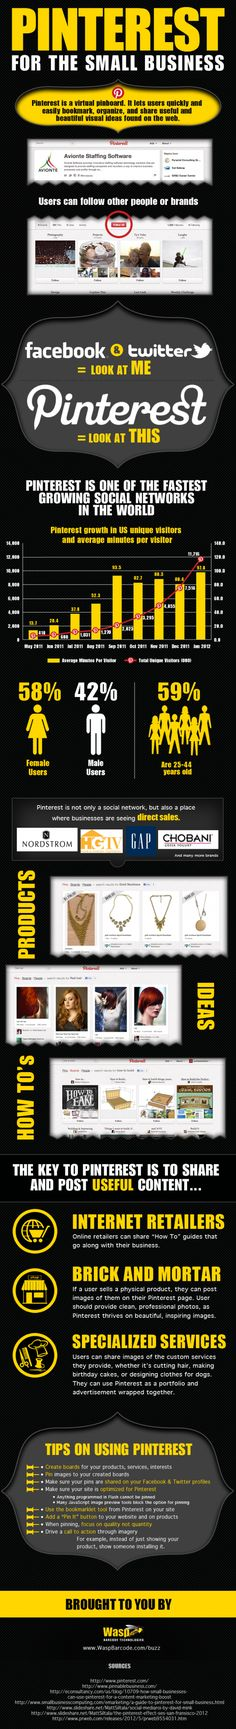 SOCIAL MEDIA - Pinterest for Small Business Infographic.